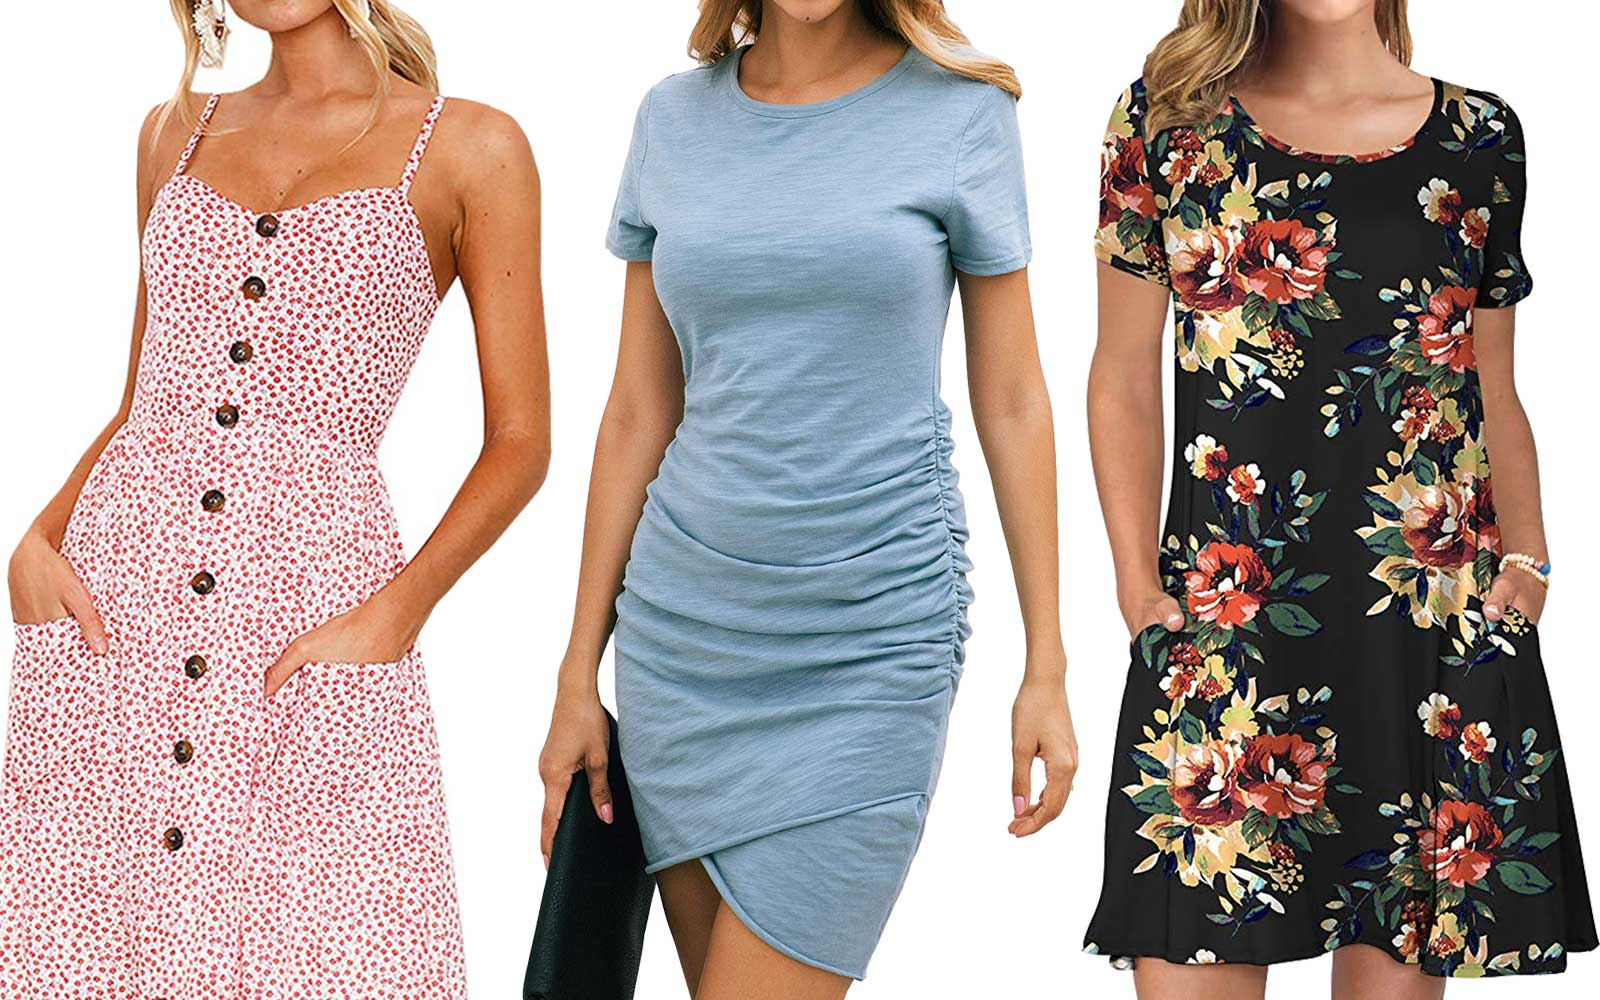 The Top 10 'Most Wished for Dresses' on Amazon Are All Under $25